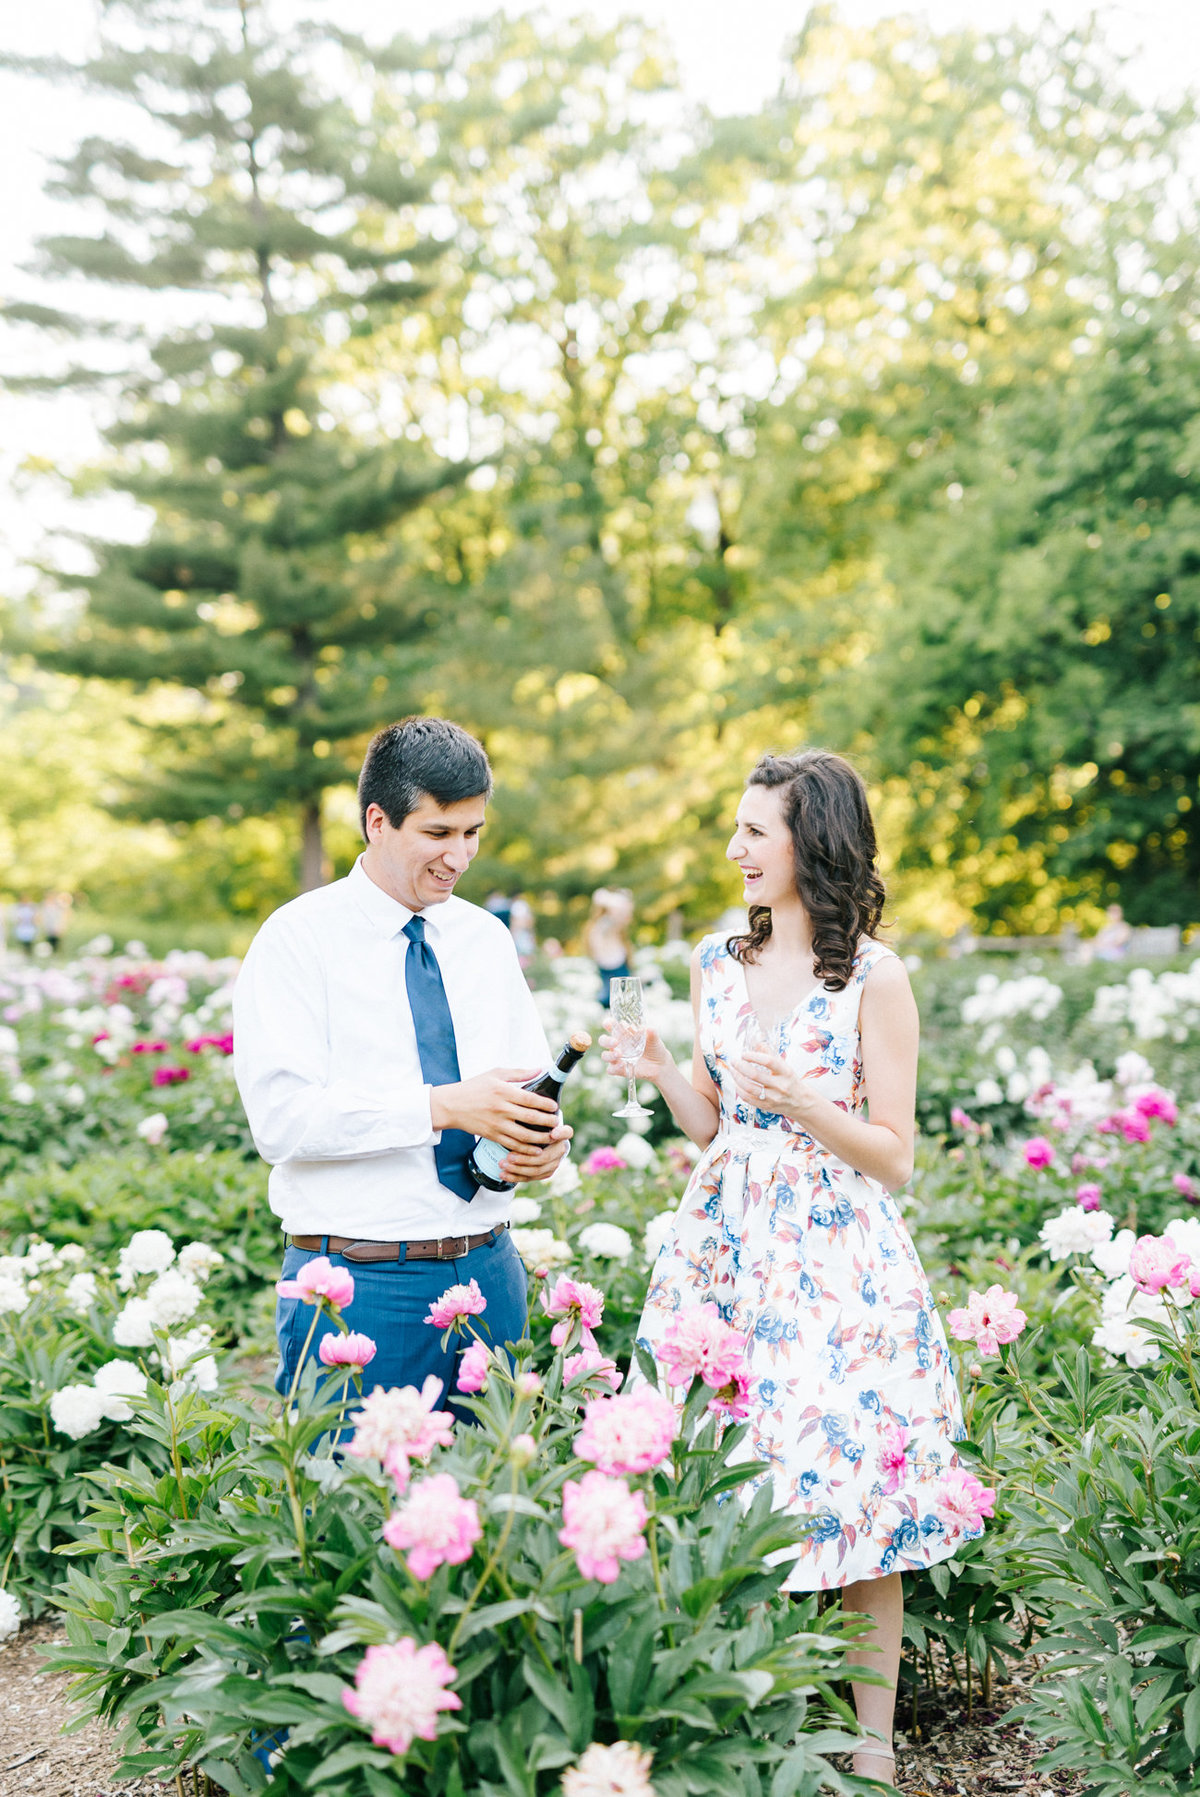 beth joy photography engagement submission-17